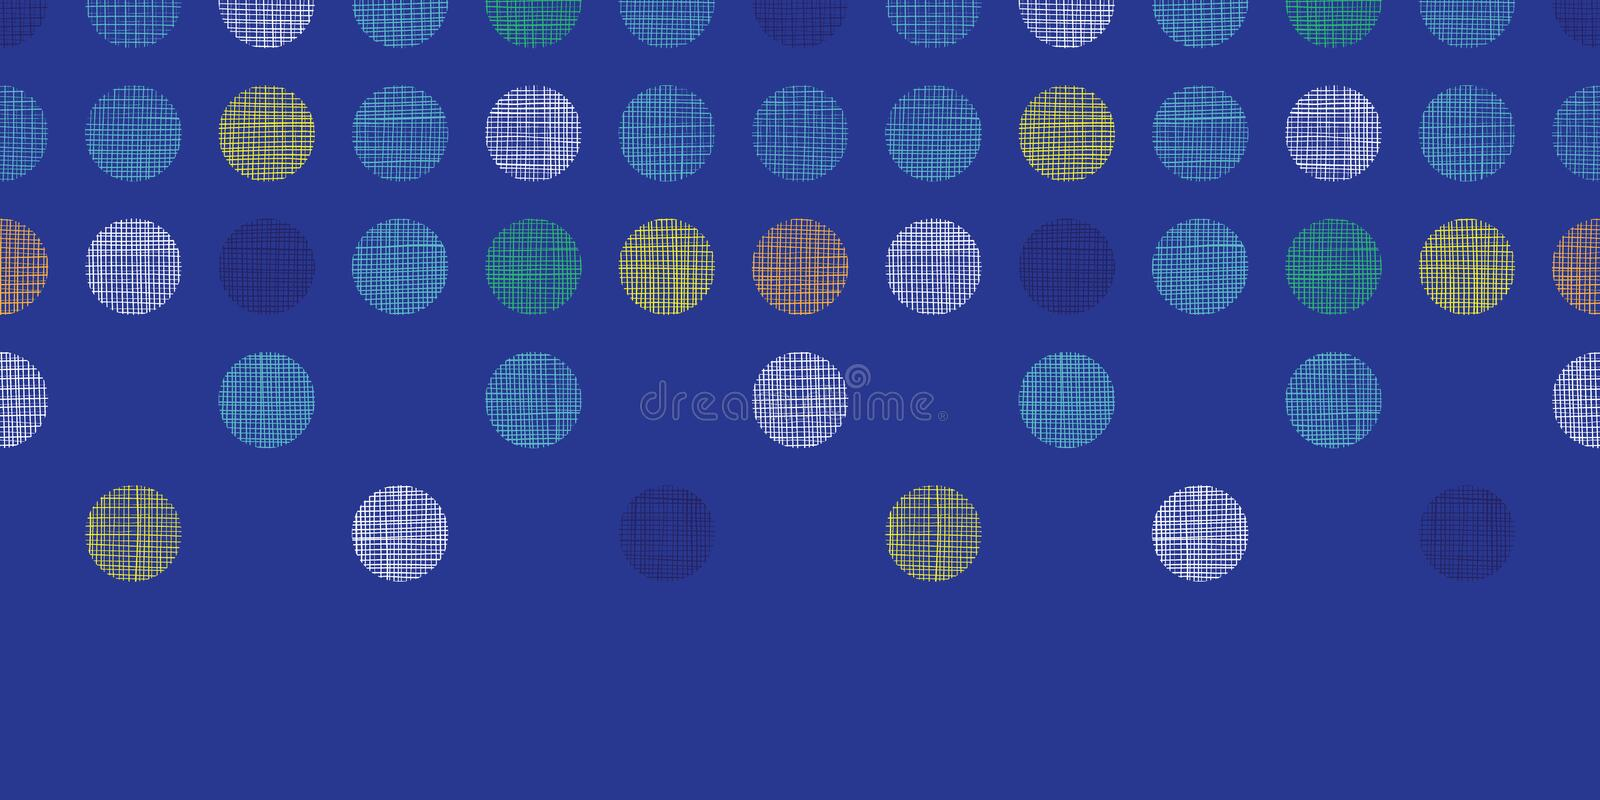 Abstract textile polka dots on blue horizontal seamless pattern background vector illustration